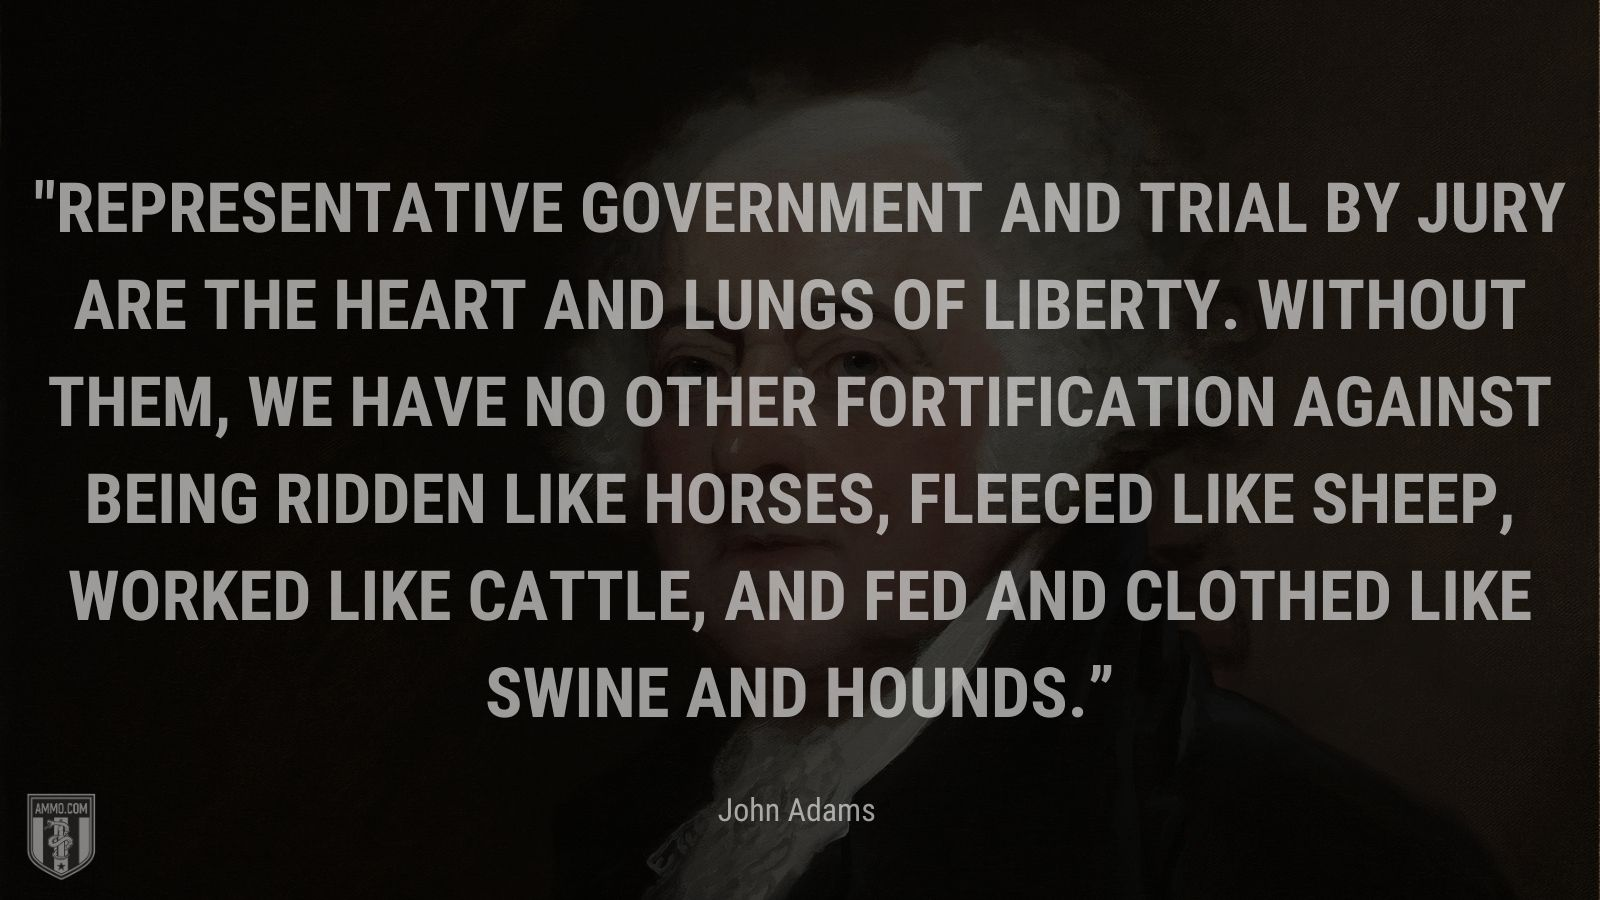 """""""Representative government and trial by jury are the heart and lungs of liberty. Without them, we have no other fortification against being ridden like horses, fleeced like sheep, worked like cattle, and fed and clothed like swine and hounds."""" - John Adams"""